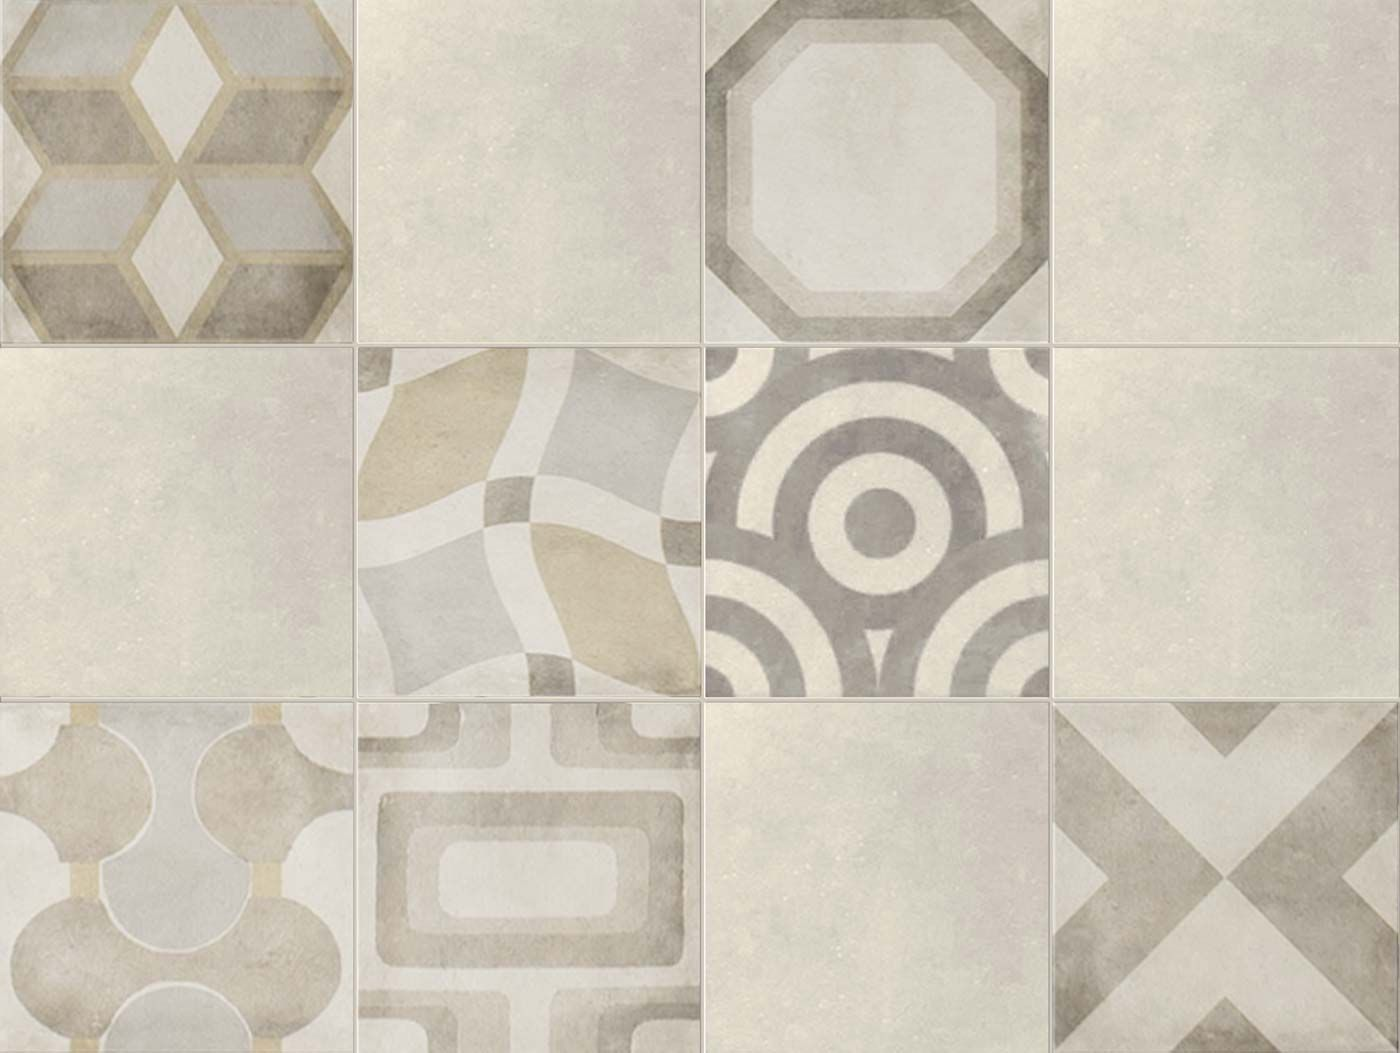 Wall Tiles Decor Inspiration Pinf B On Pllaka  Pinterest  Sitting Rooms Wall Tiles And Design Ideas